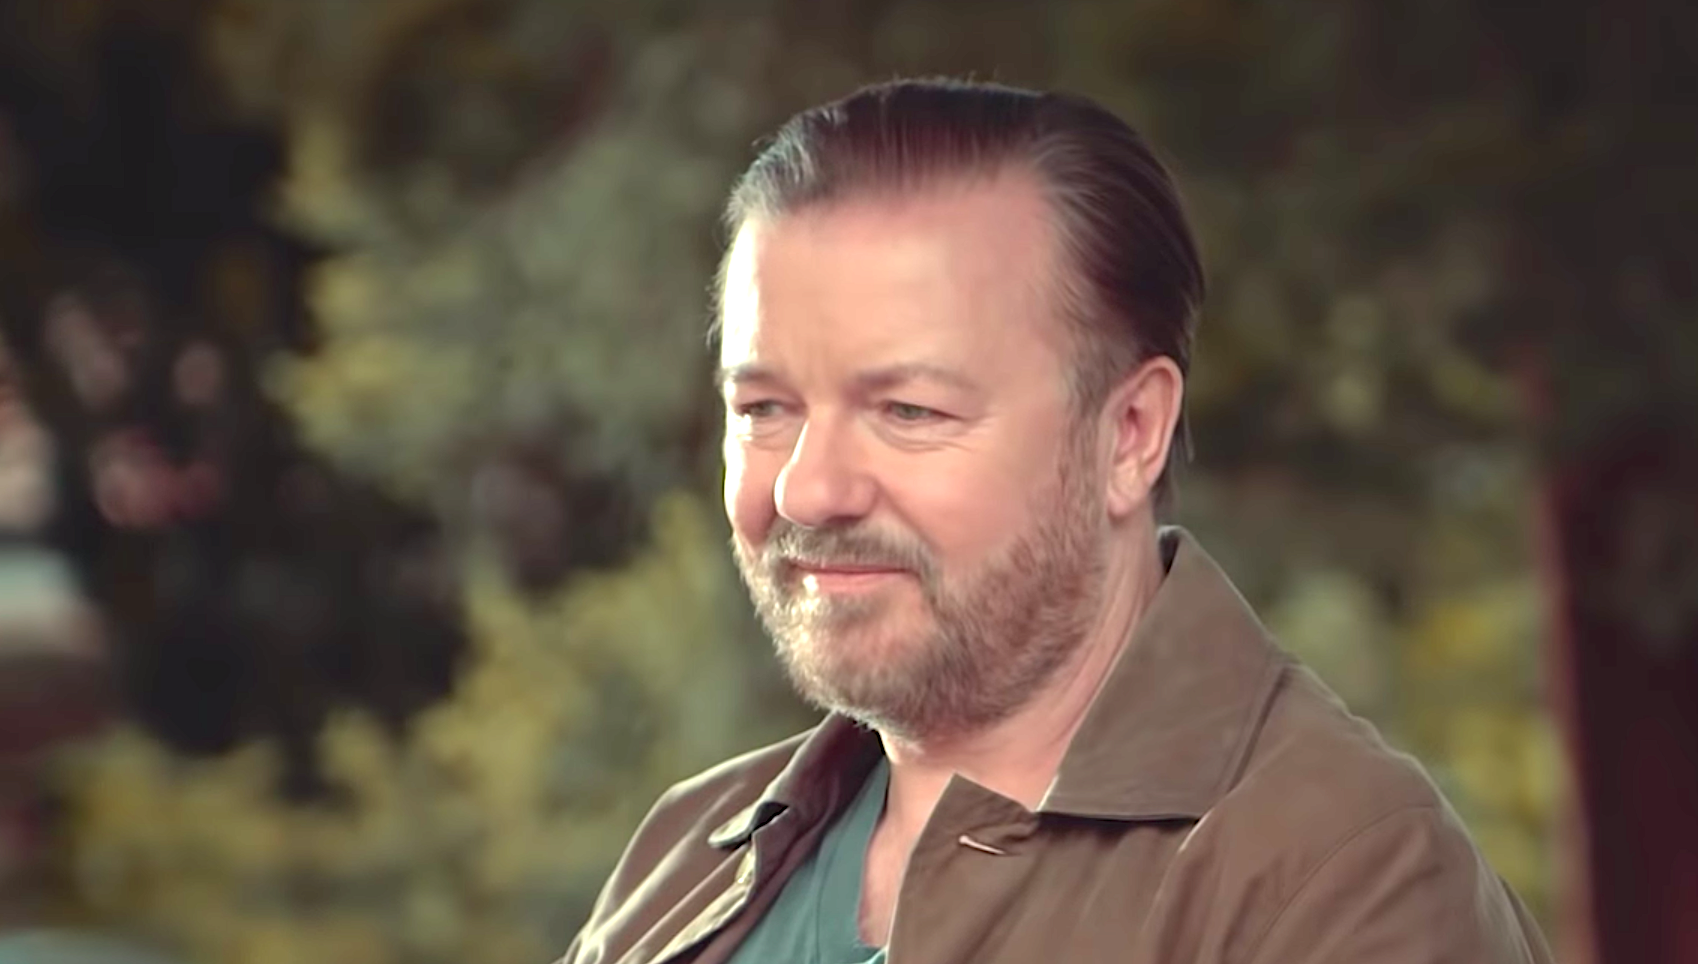 Comedian Ricky Gervais Reflects On Epic Golden Globes ... |Ricky Gervais Movies